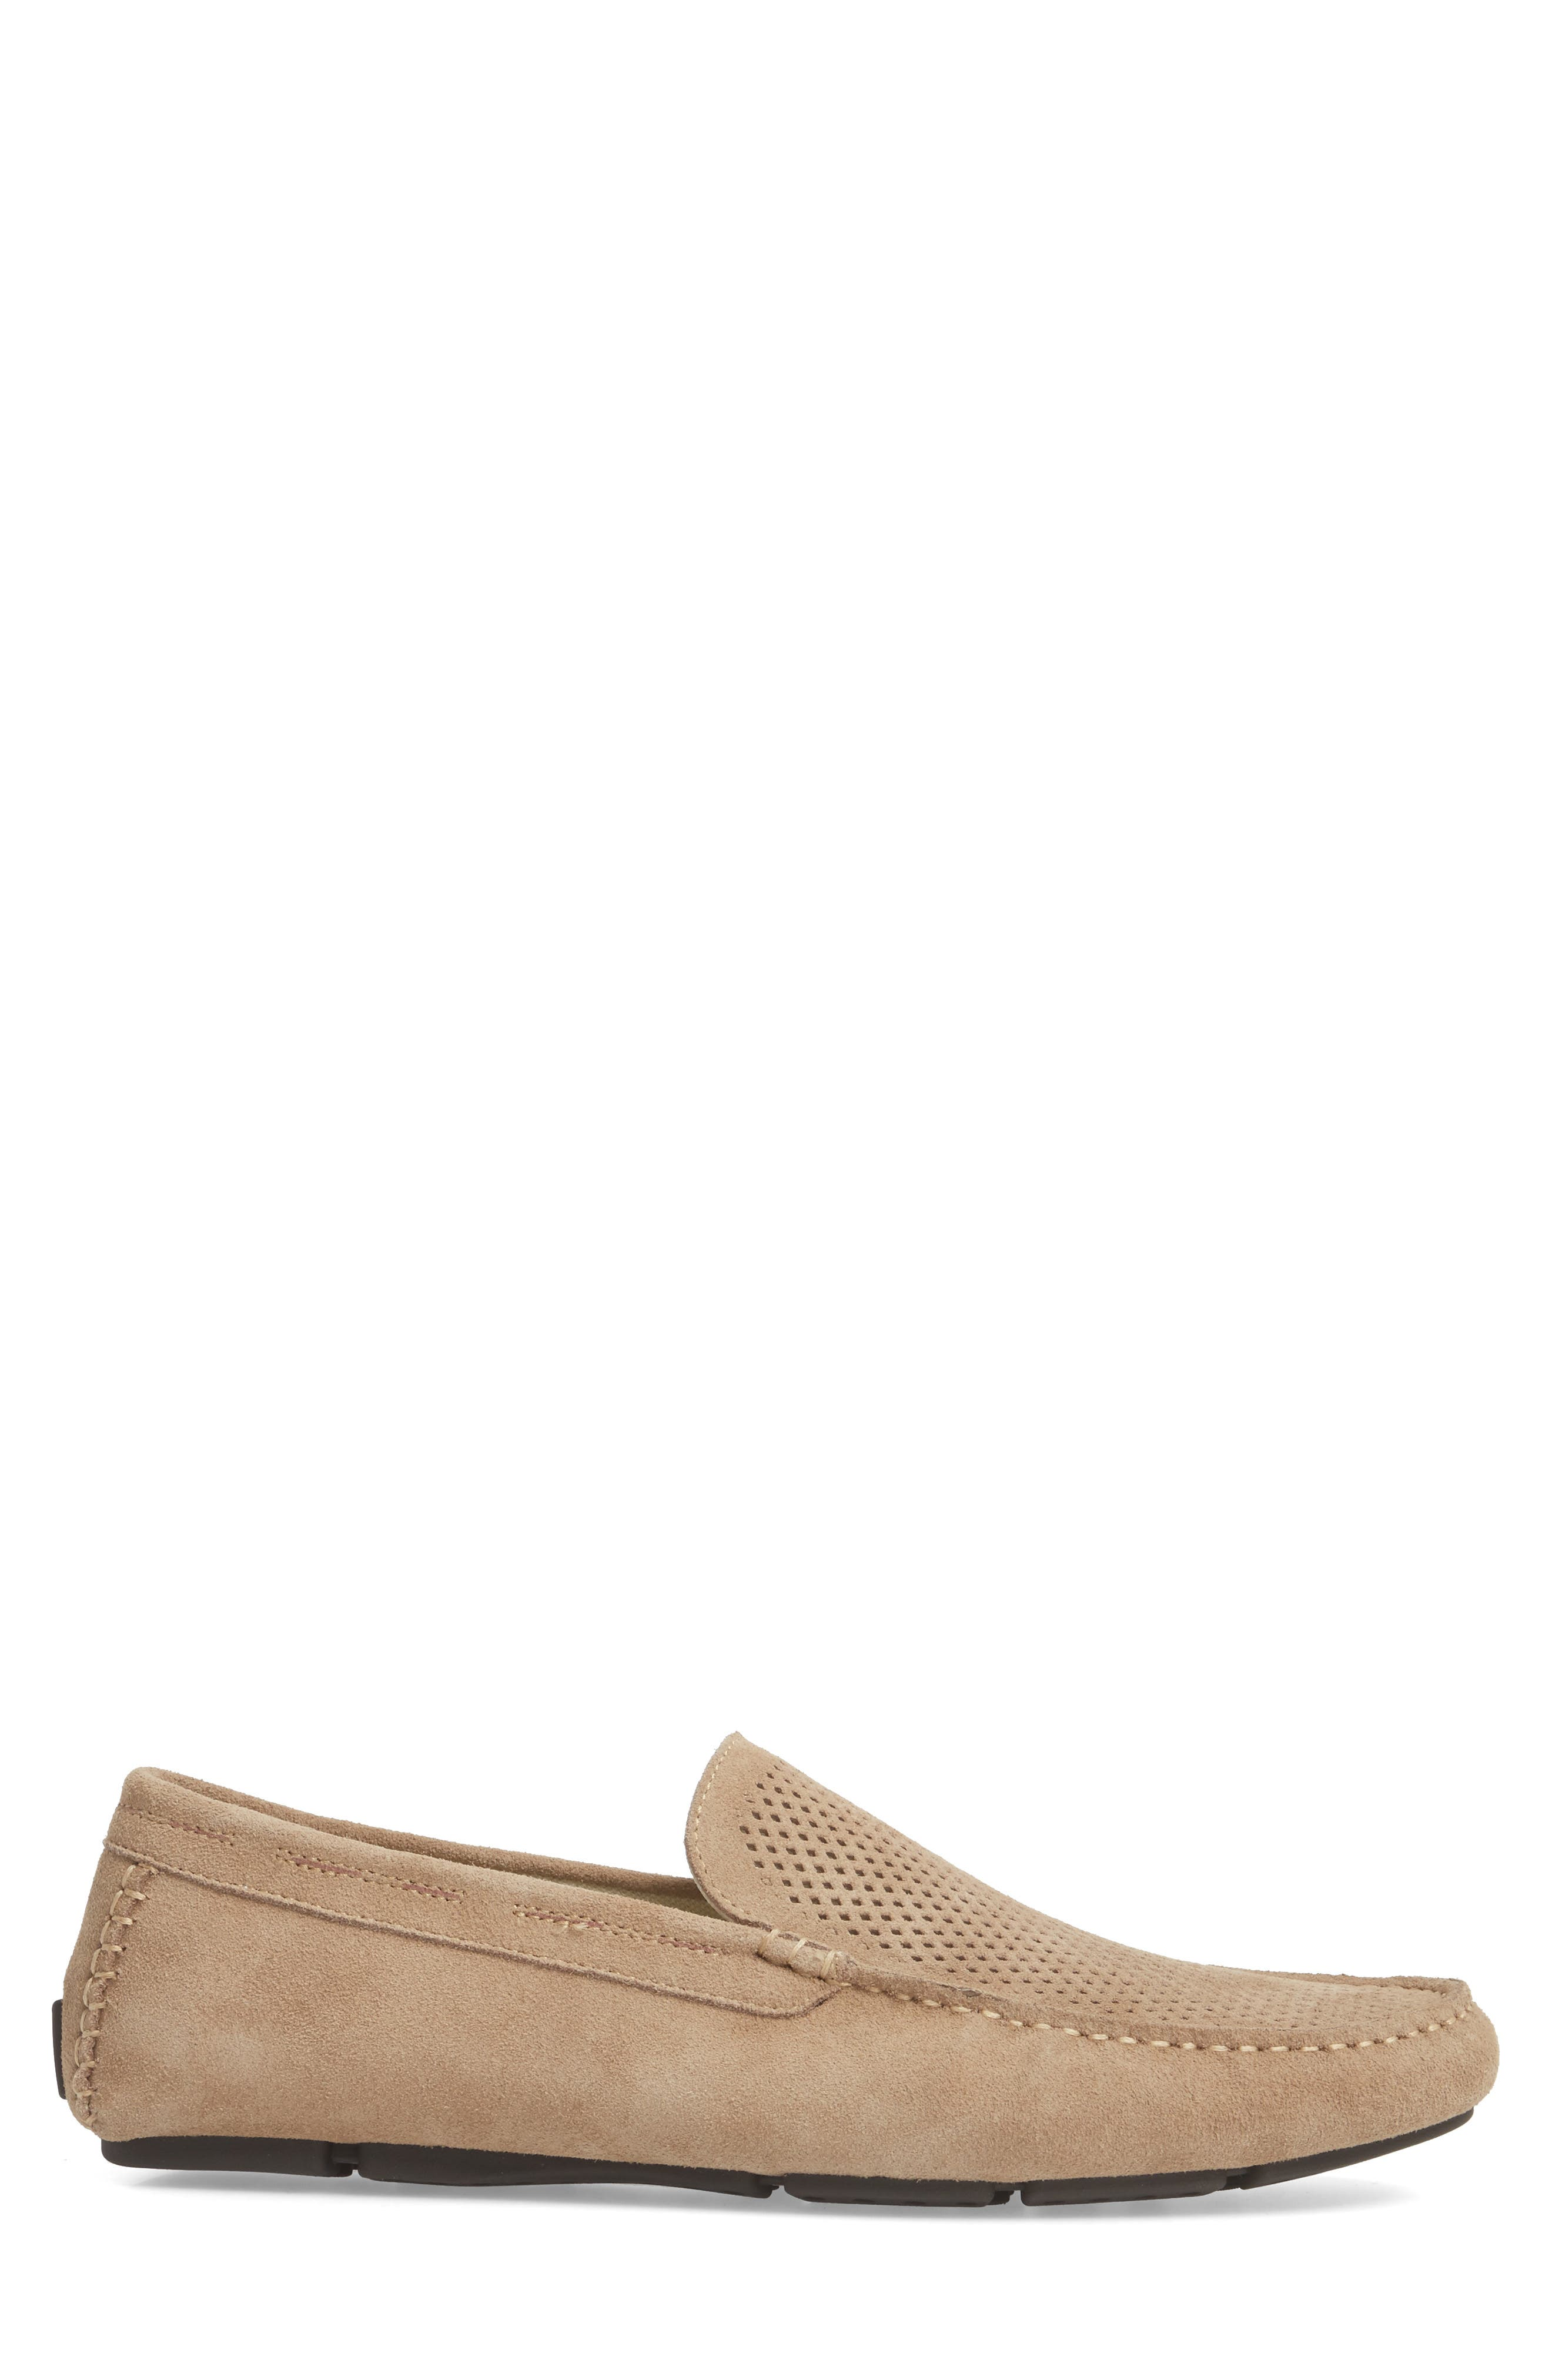 Scottsdale Perforated Driving Moccasin,                             Alternate thumbnail 3, color,                             Tan Suede